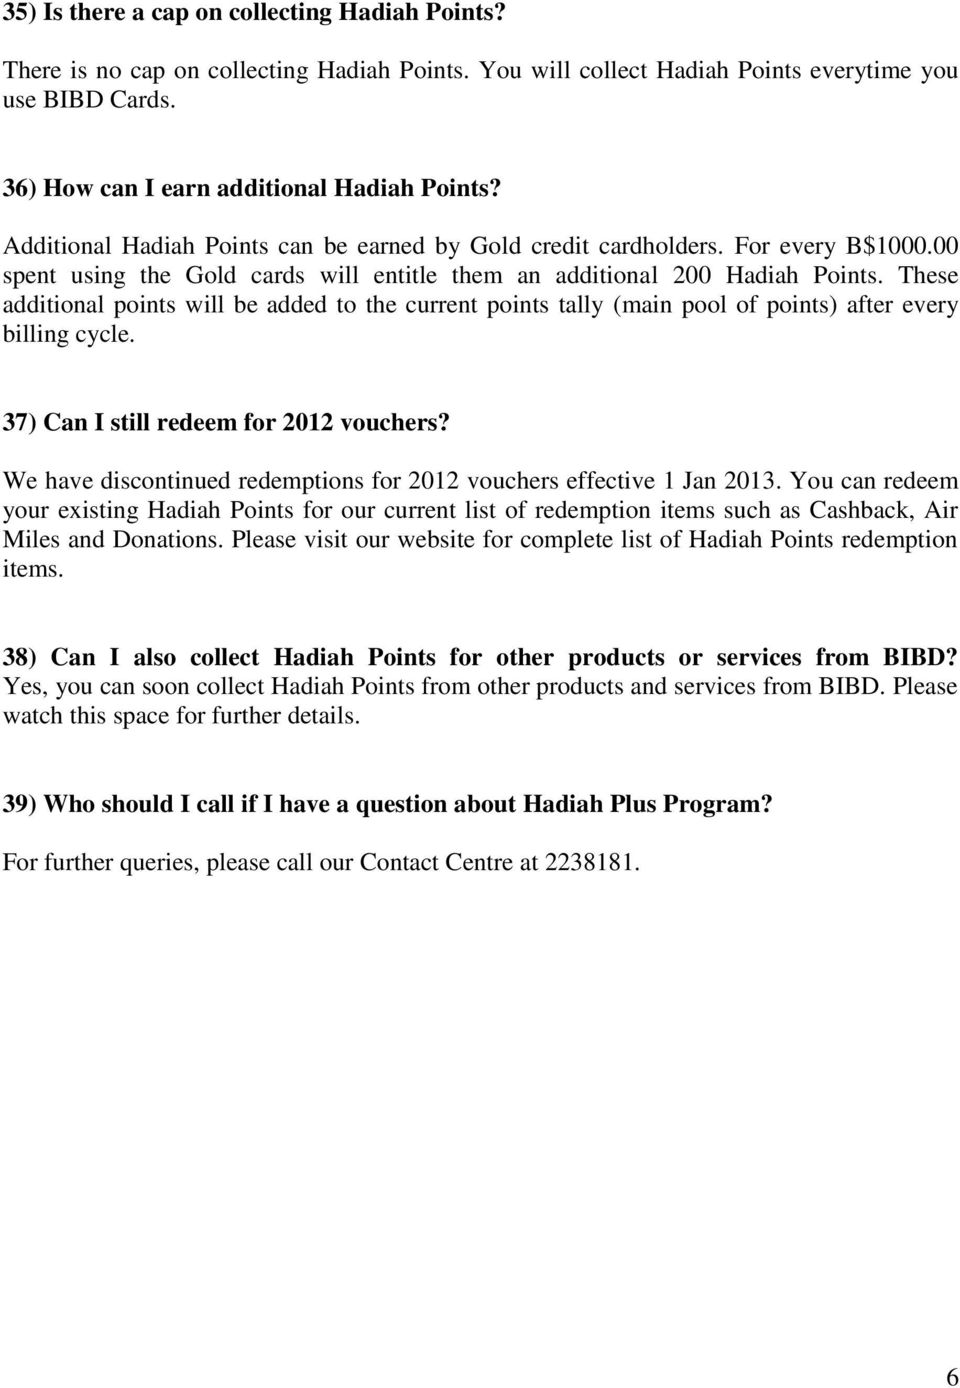 Hadiah Plus Faq Bibd Debit Cardholders Will Earn Points For Airasia Big Poin Point Air Asia These Additional Be Added To The Current Tally Main Pool Of